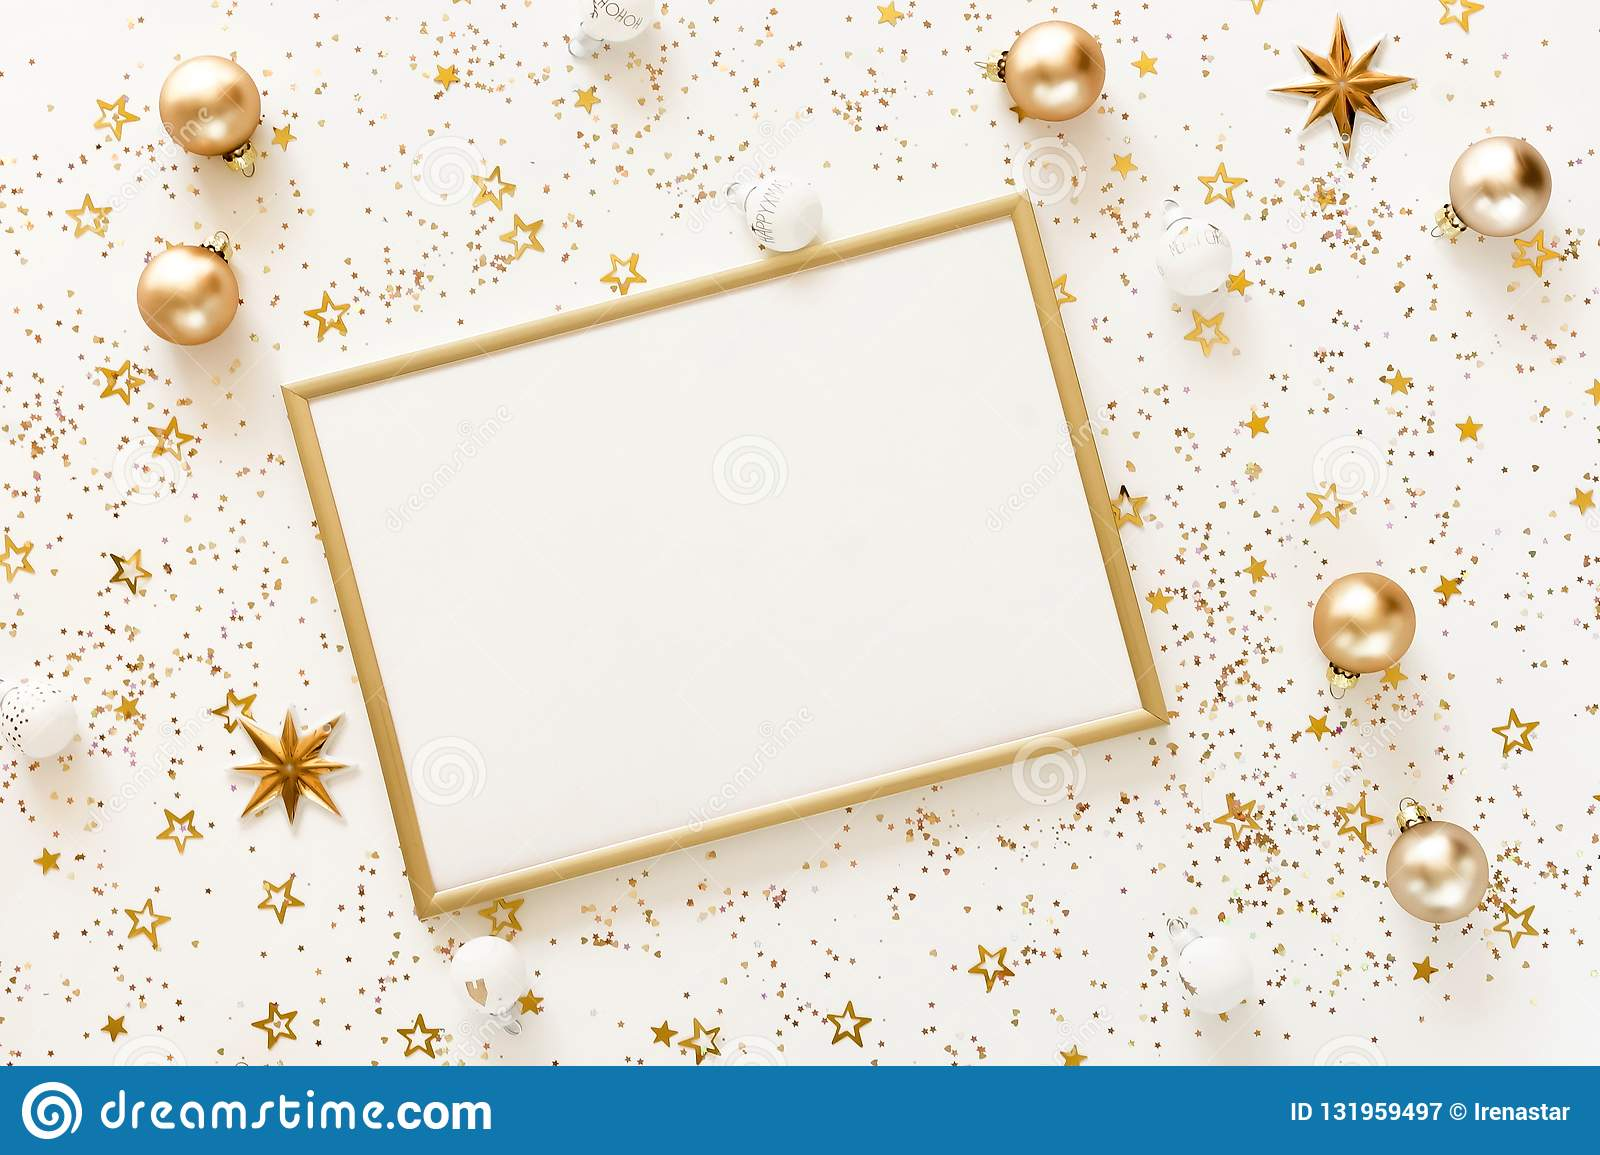 christmas background from gold and white christmas decorations on white table stock image image of merry frame 131959497 https www dreamstime com christmas background gold white decorations table xmas composition new year s balls winter holiday concept flat lay image131959497